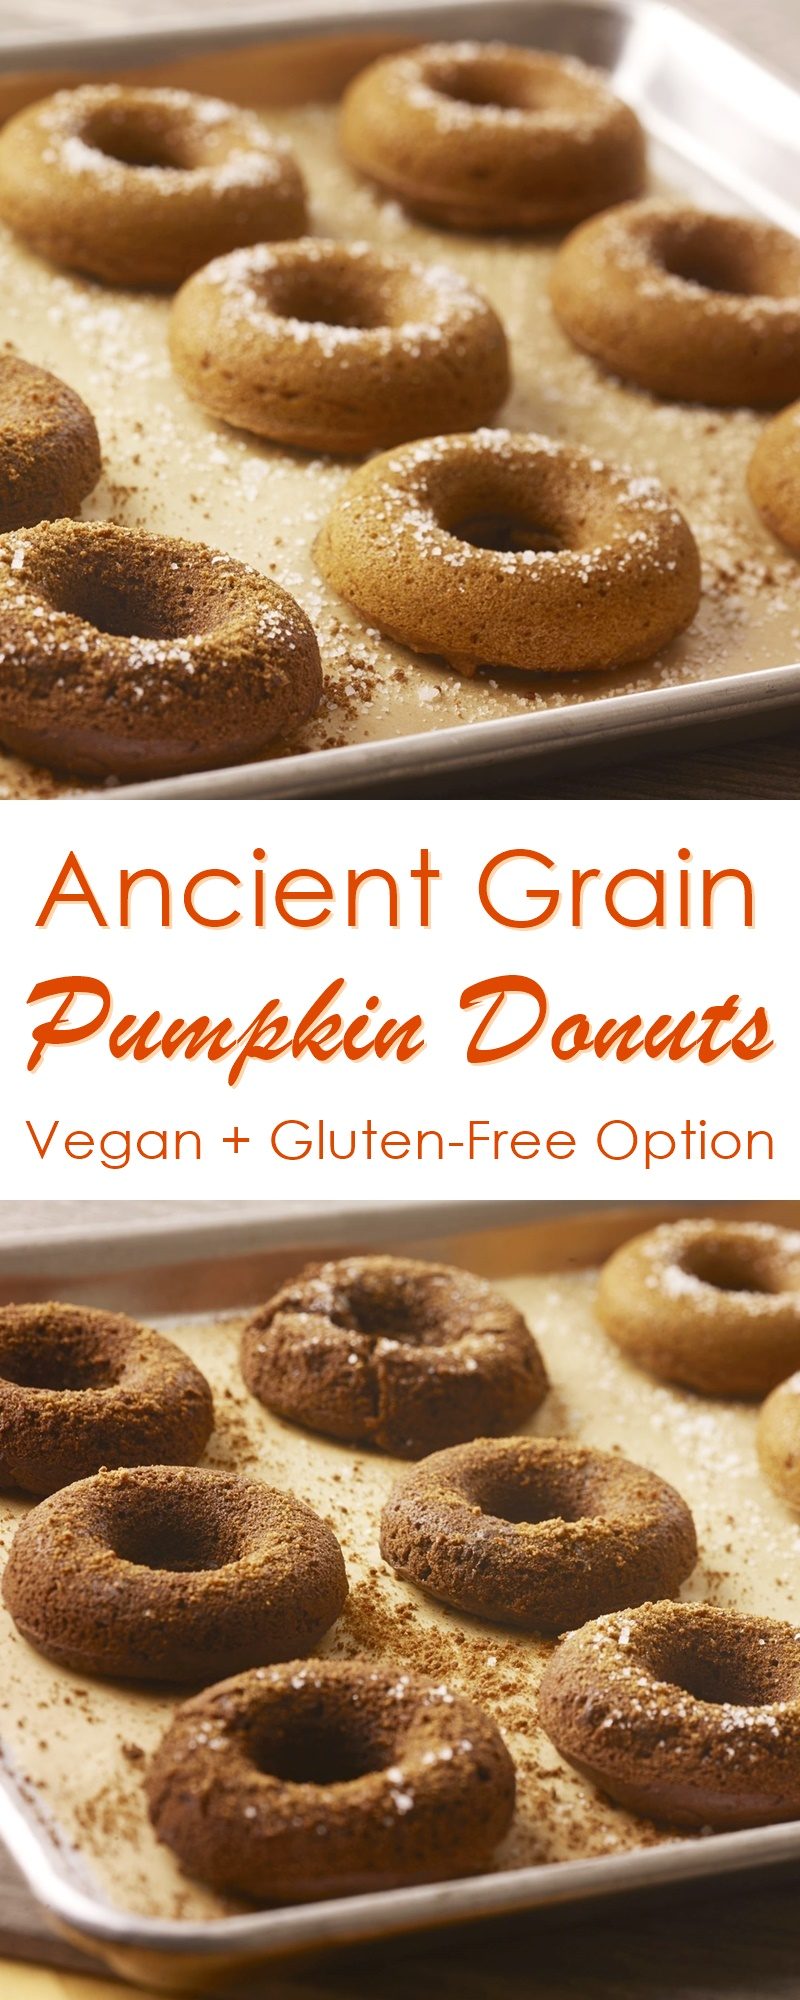 Baked Vegan Pumpkin Donuts Recipe - healthy, made with Ancient Grains (gluten-free option)